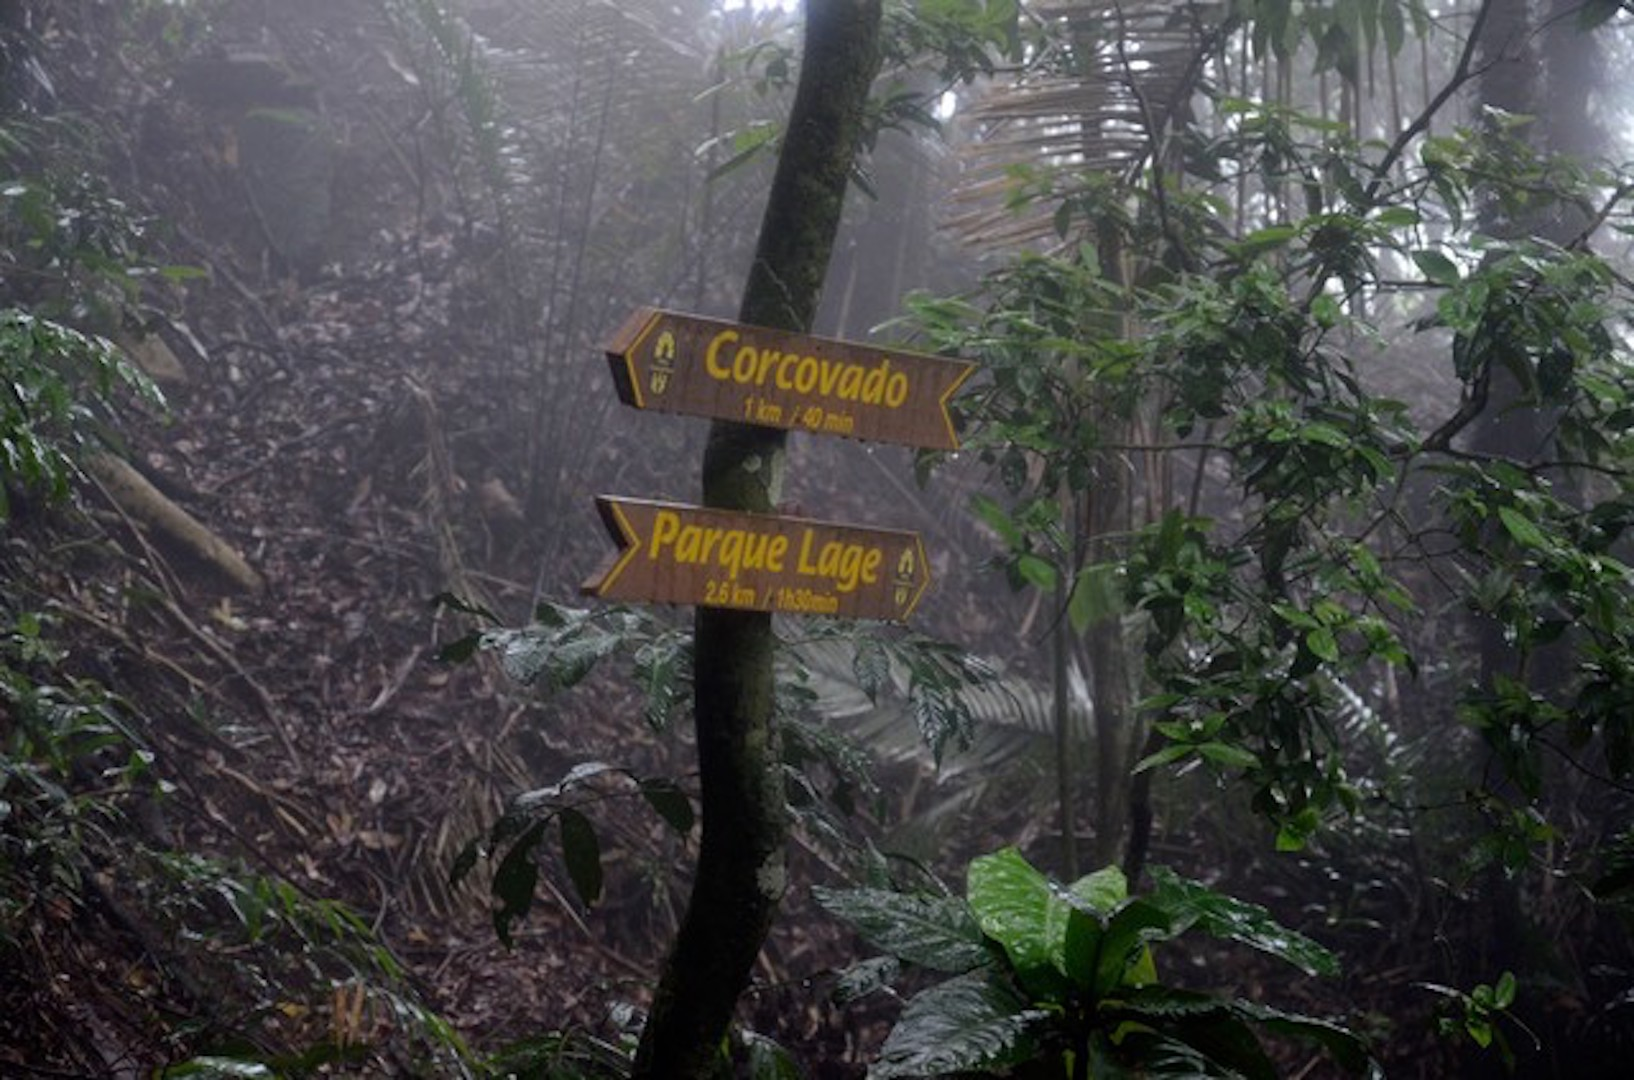 Brazil,Trail that goes from Parque Lage to Corcovado mountain is very popular among tourists.